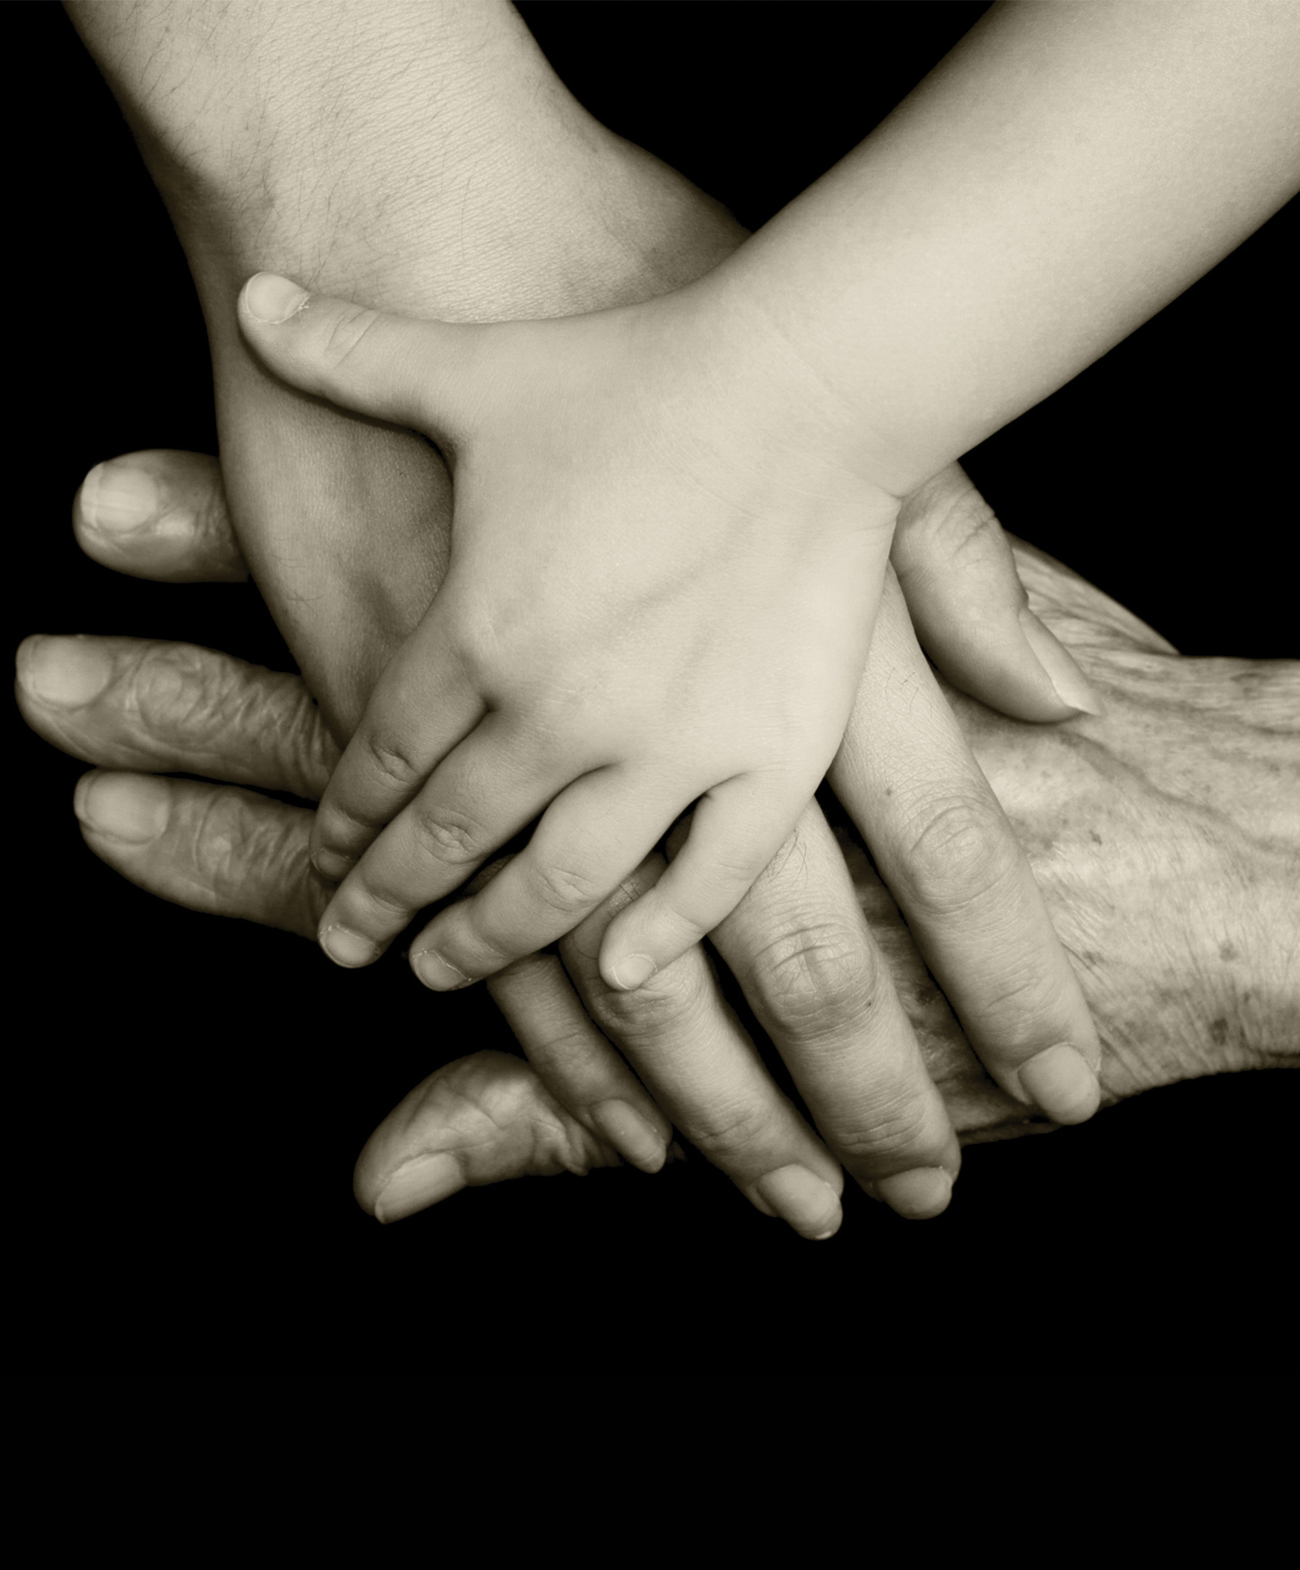 hands of three different people, three different ages, crossed